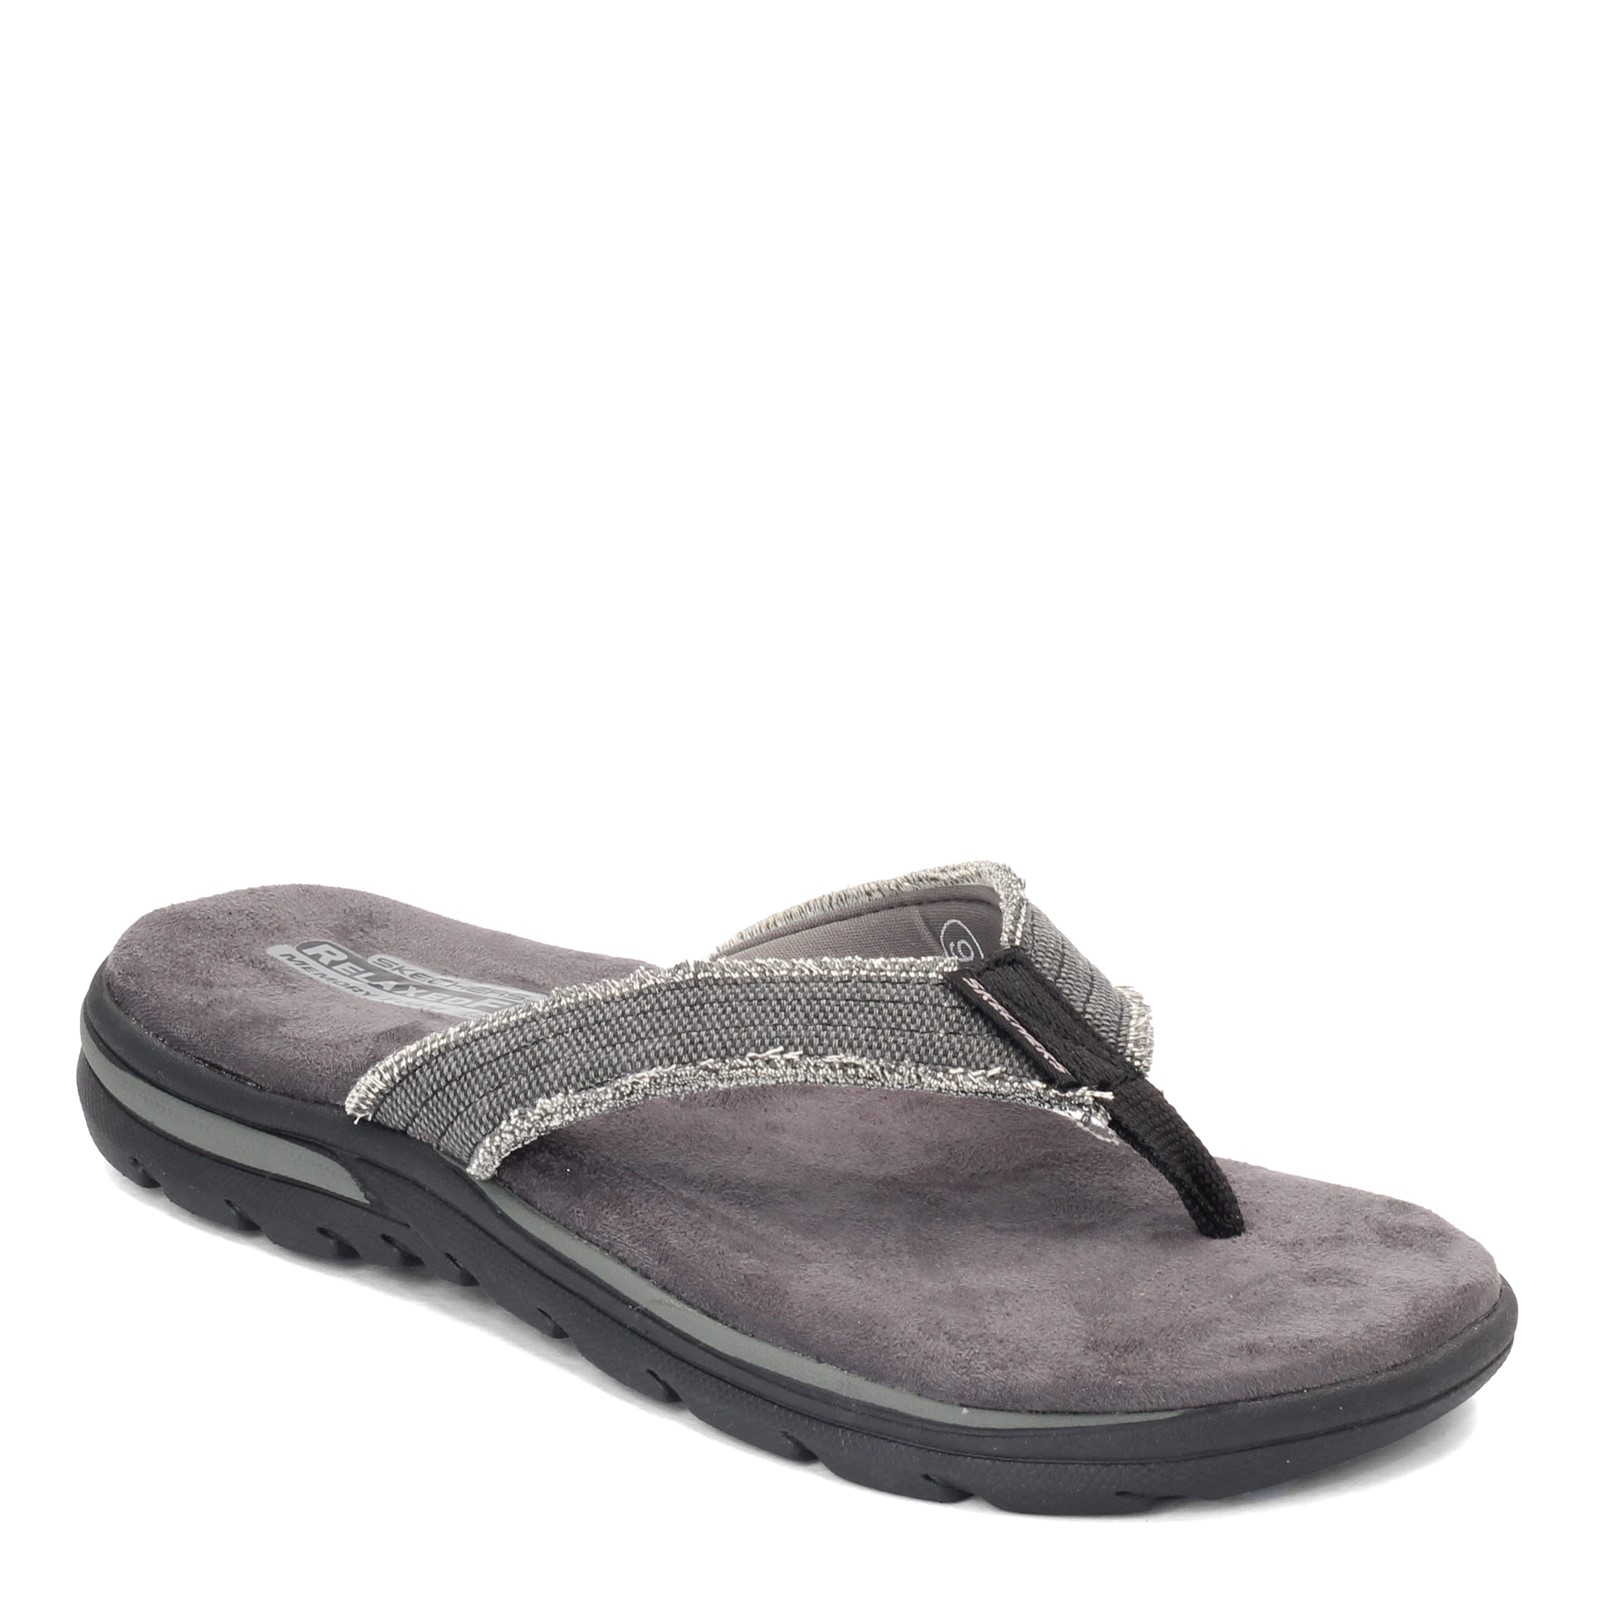 Men's Skechers, Relaxed Fit: Supreme - Bosnia Sandal